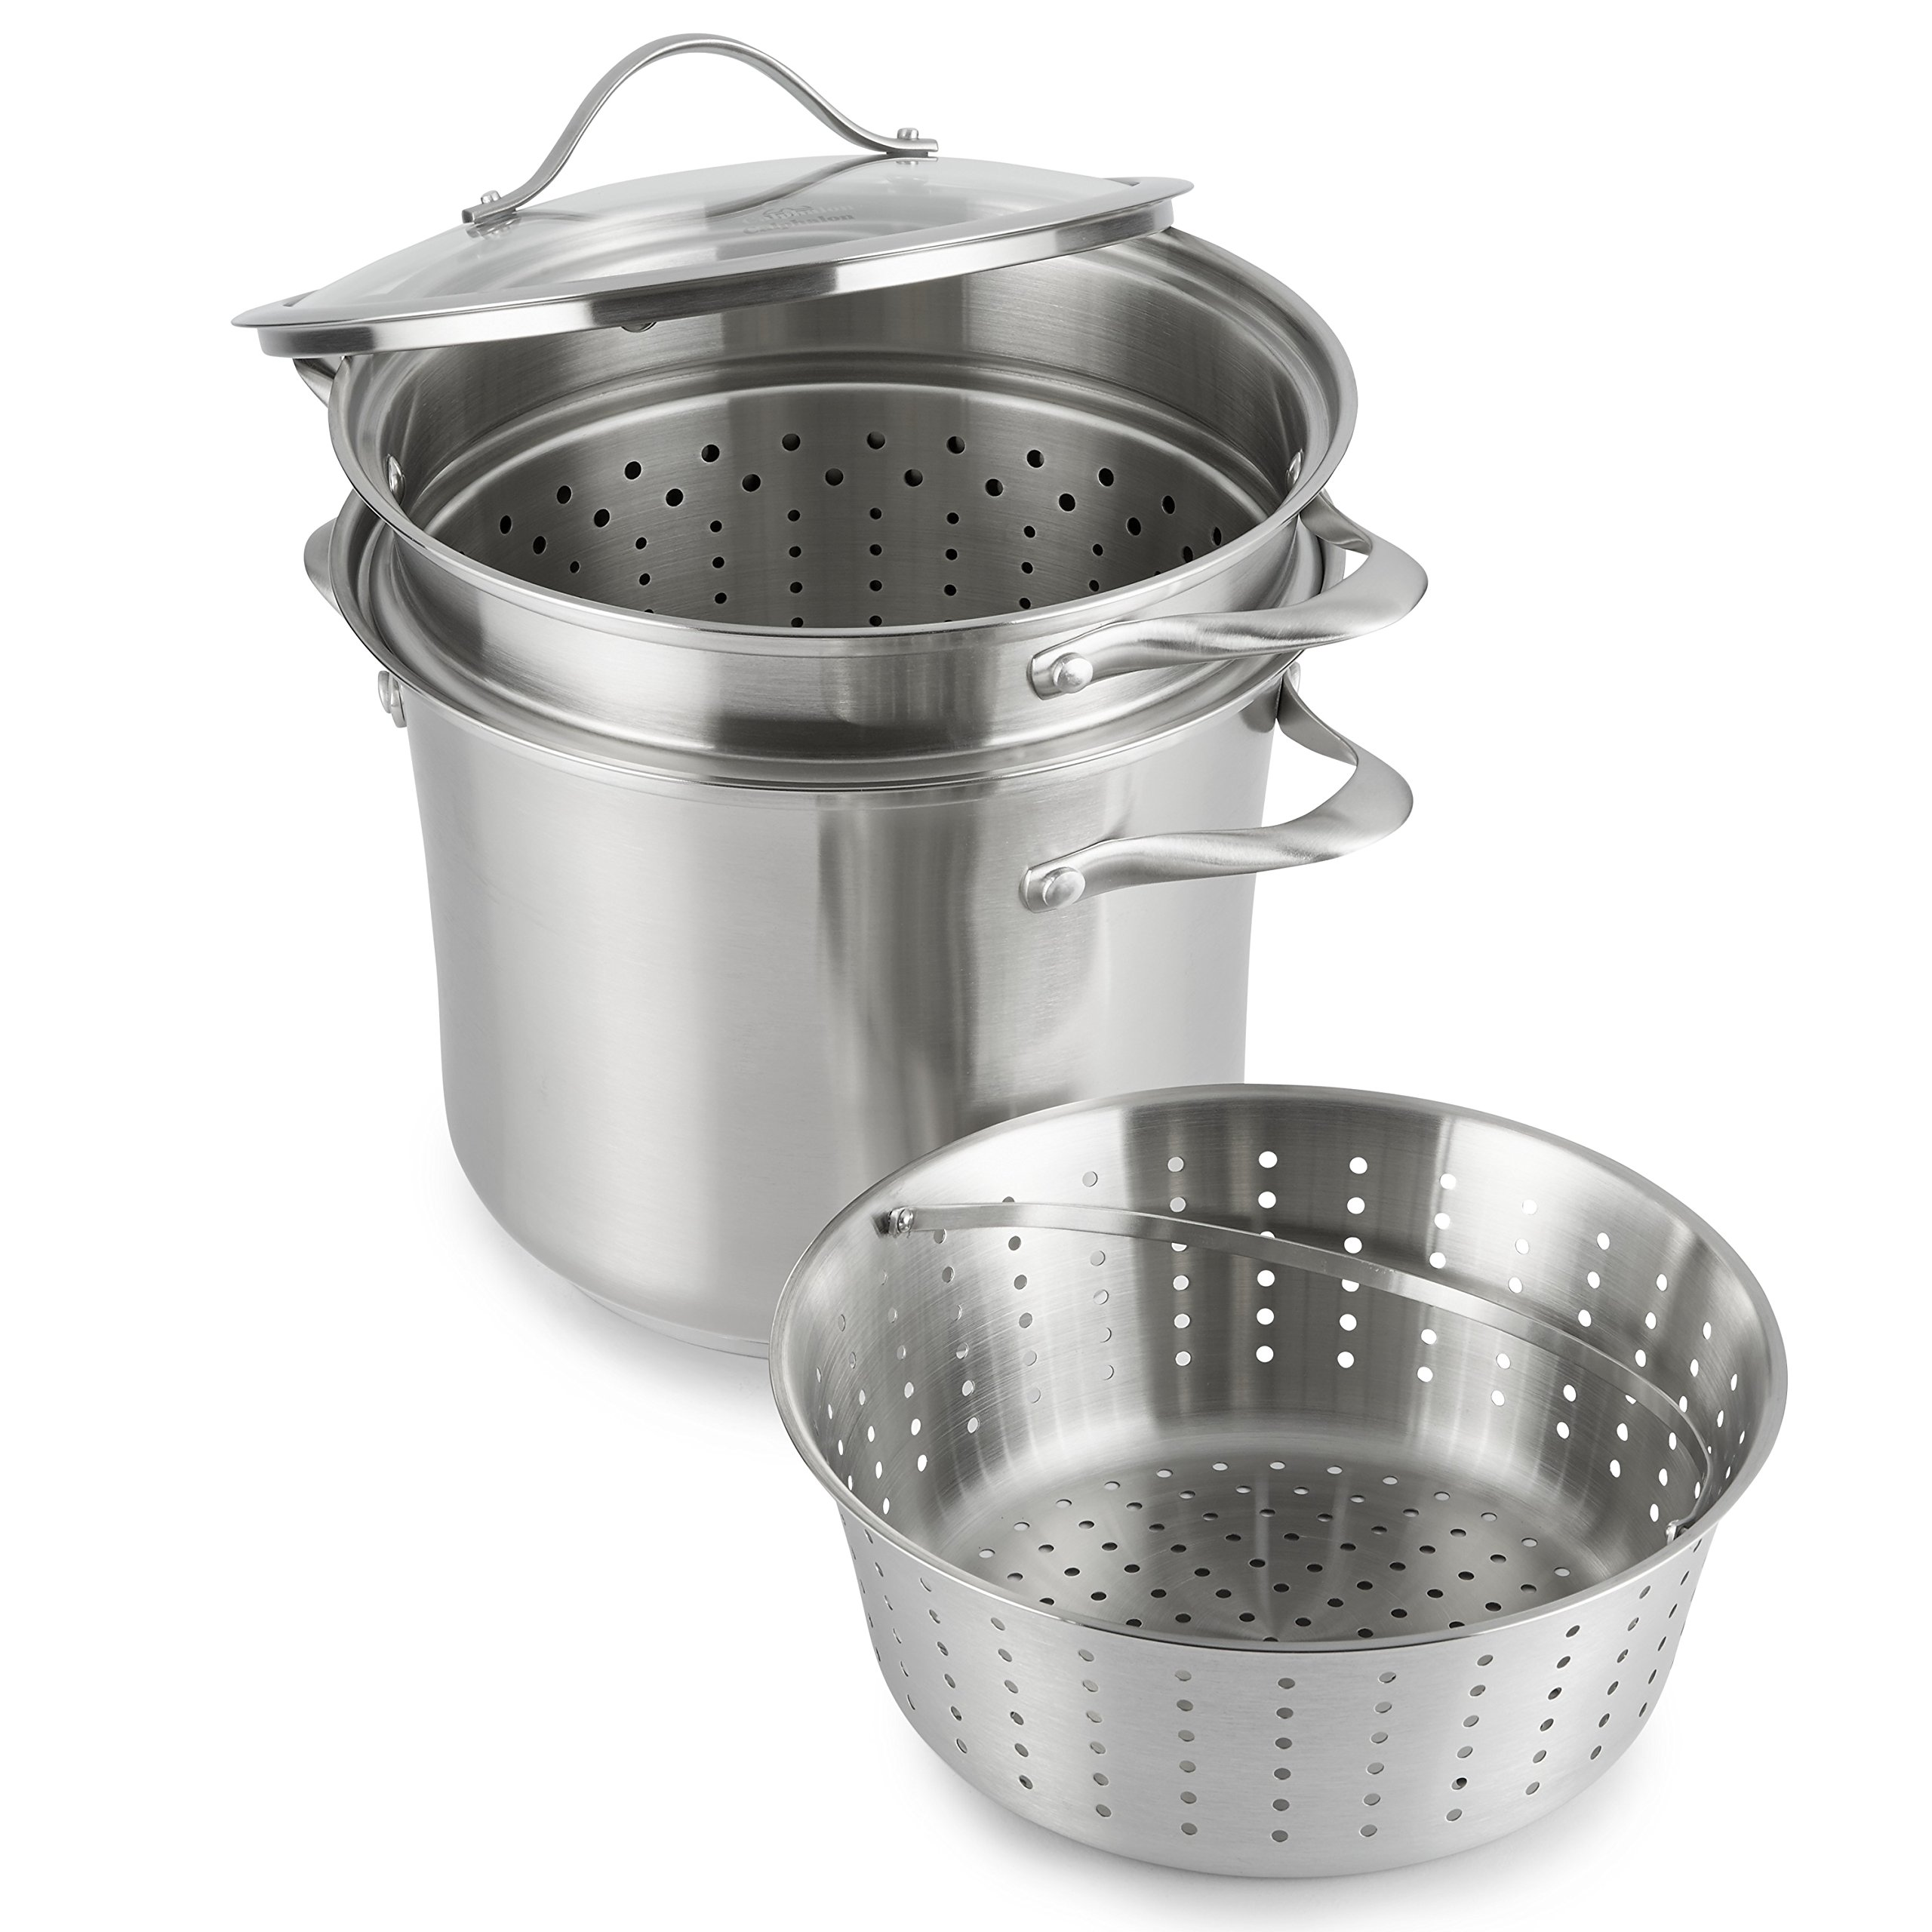 Calphalon Contemporary Stainless Steel Cookware, Multi-Pot, 8-quart